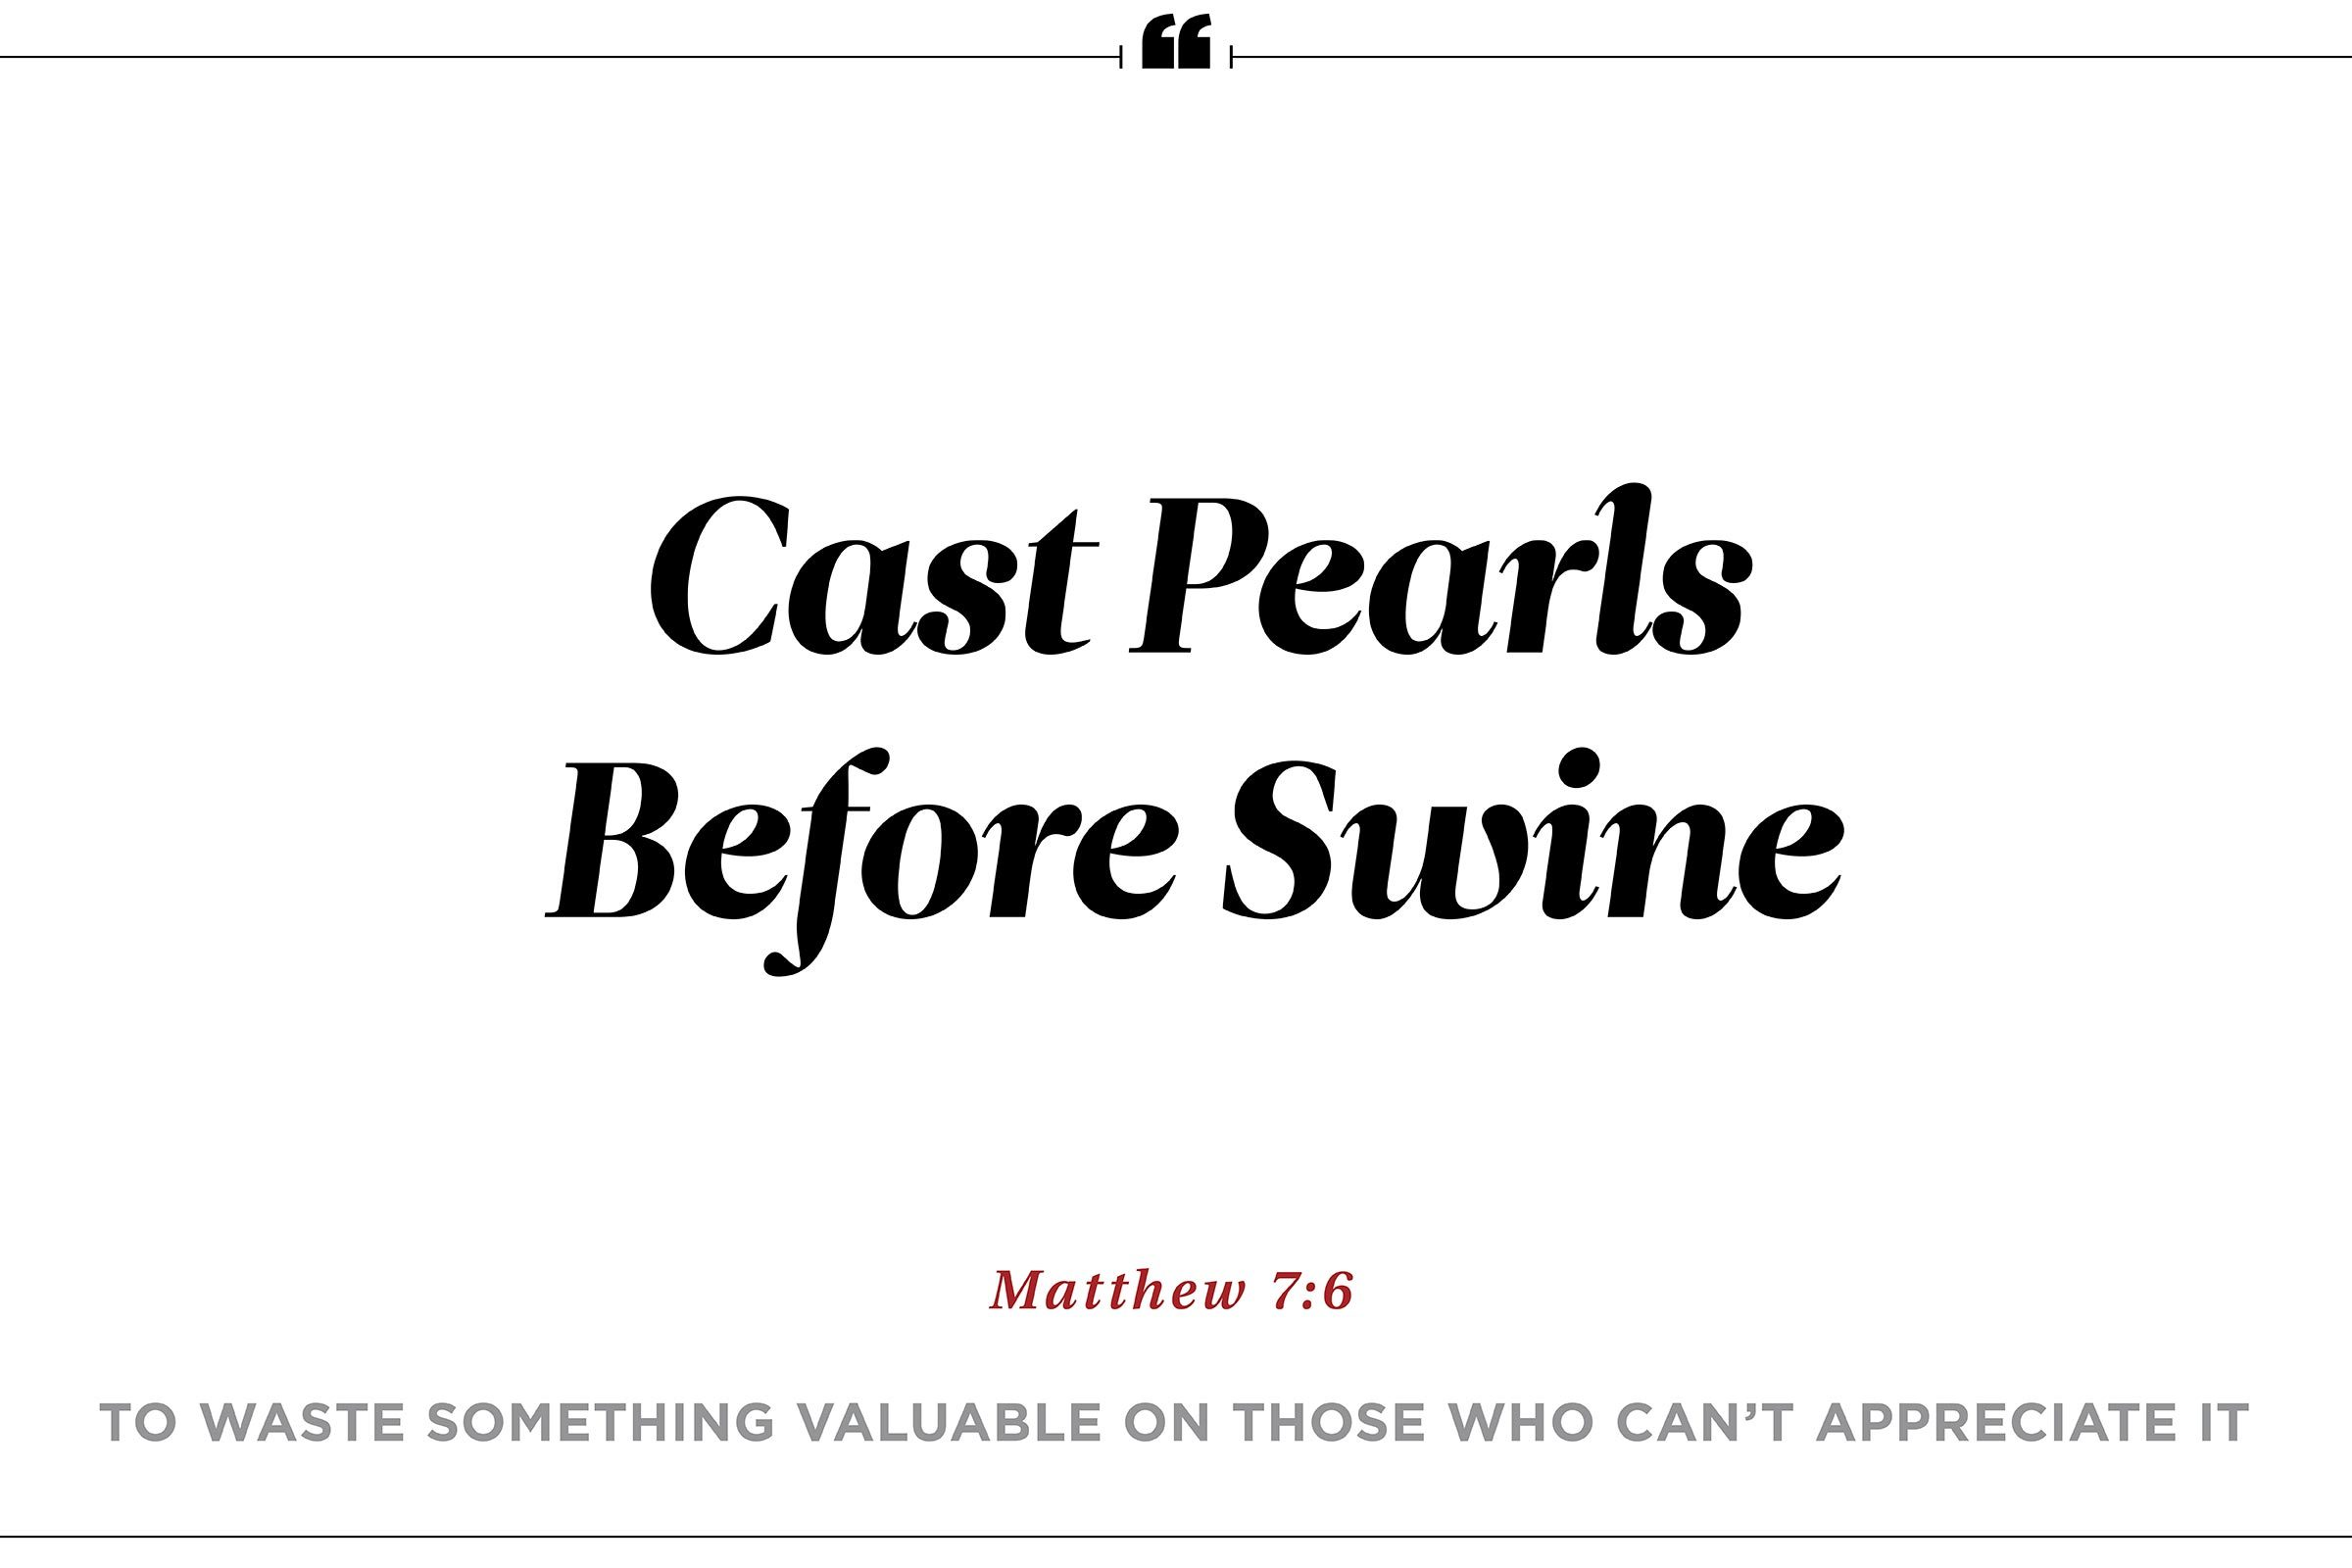 """To cast pearls before swine"""